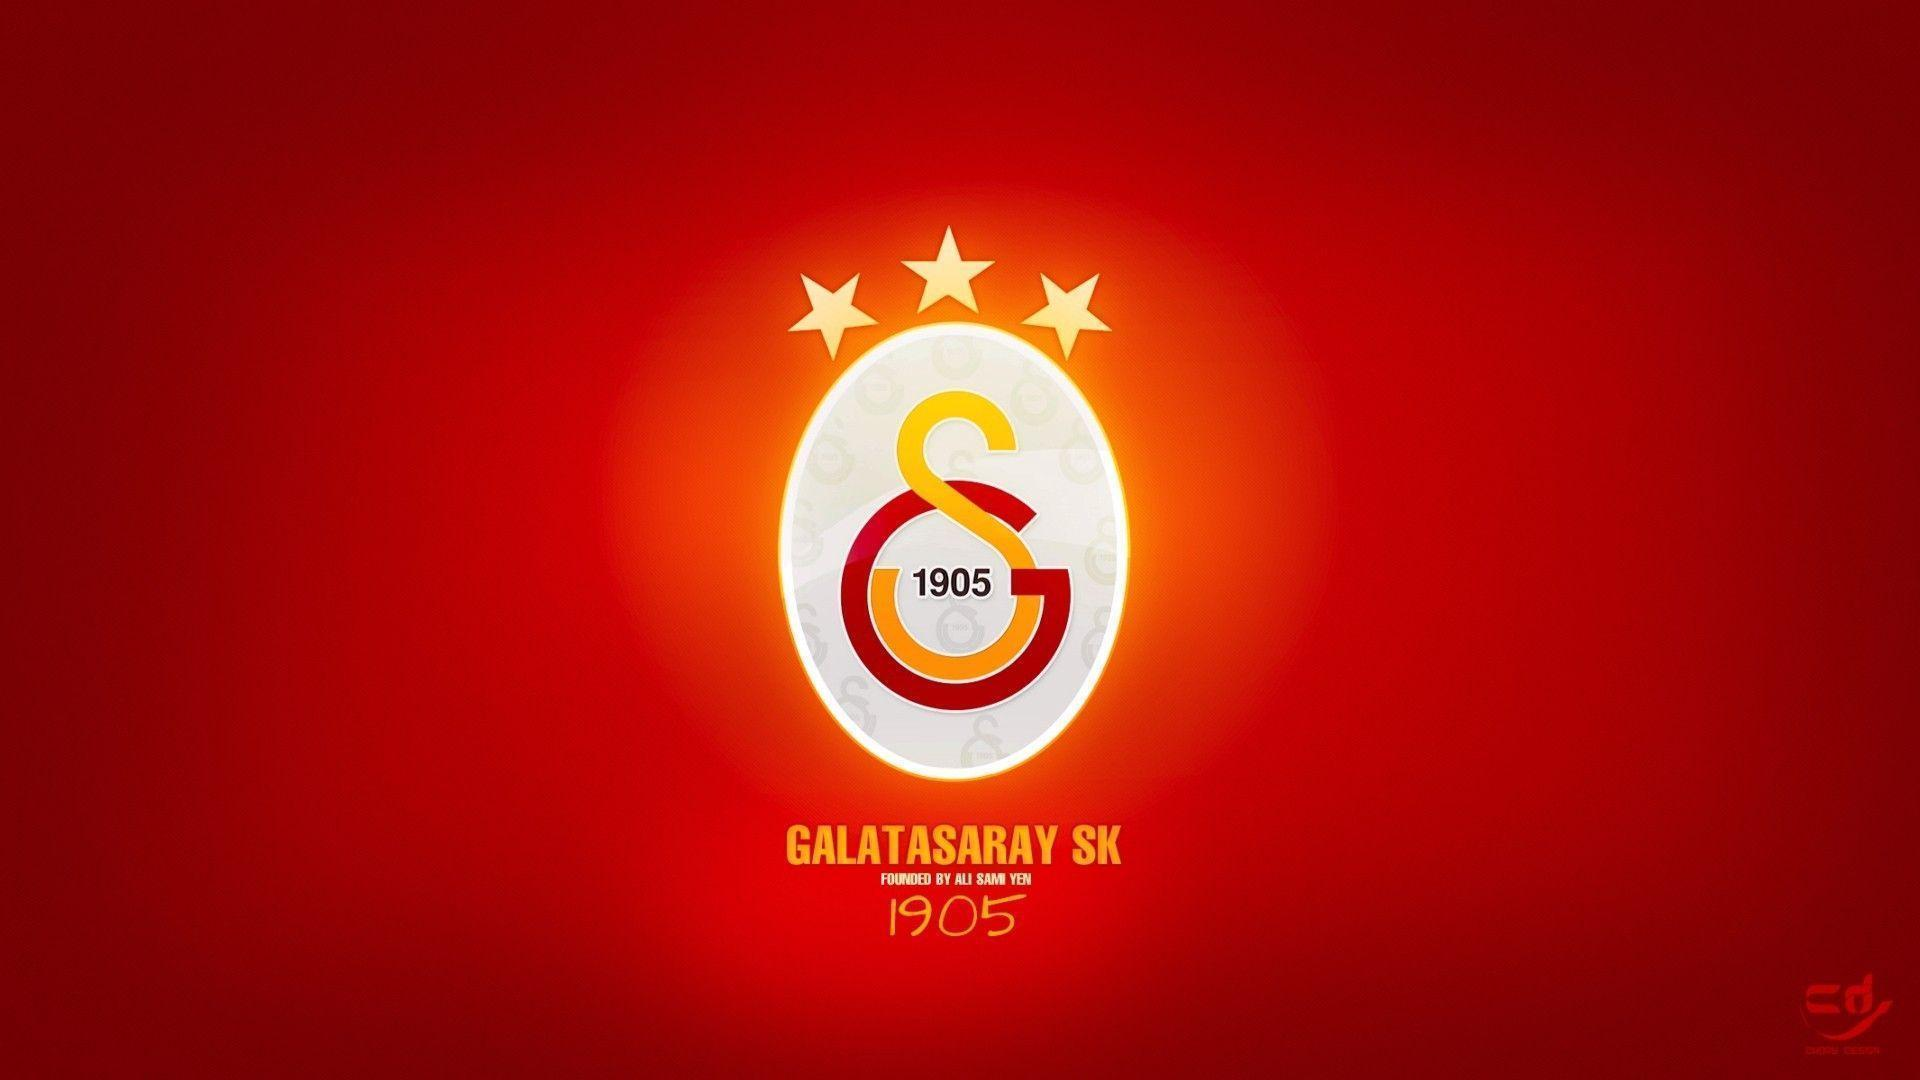 Galatasaray S.K. Wallpapers HD / Desktop and Mobile Backgrounds